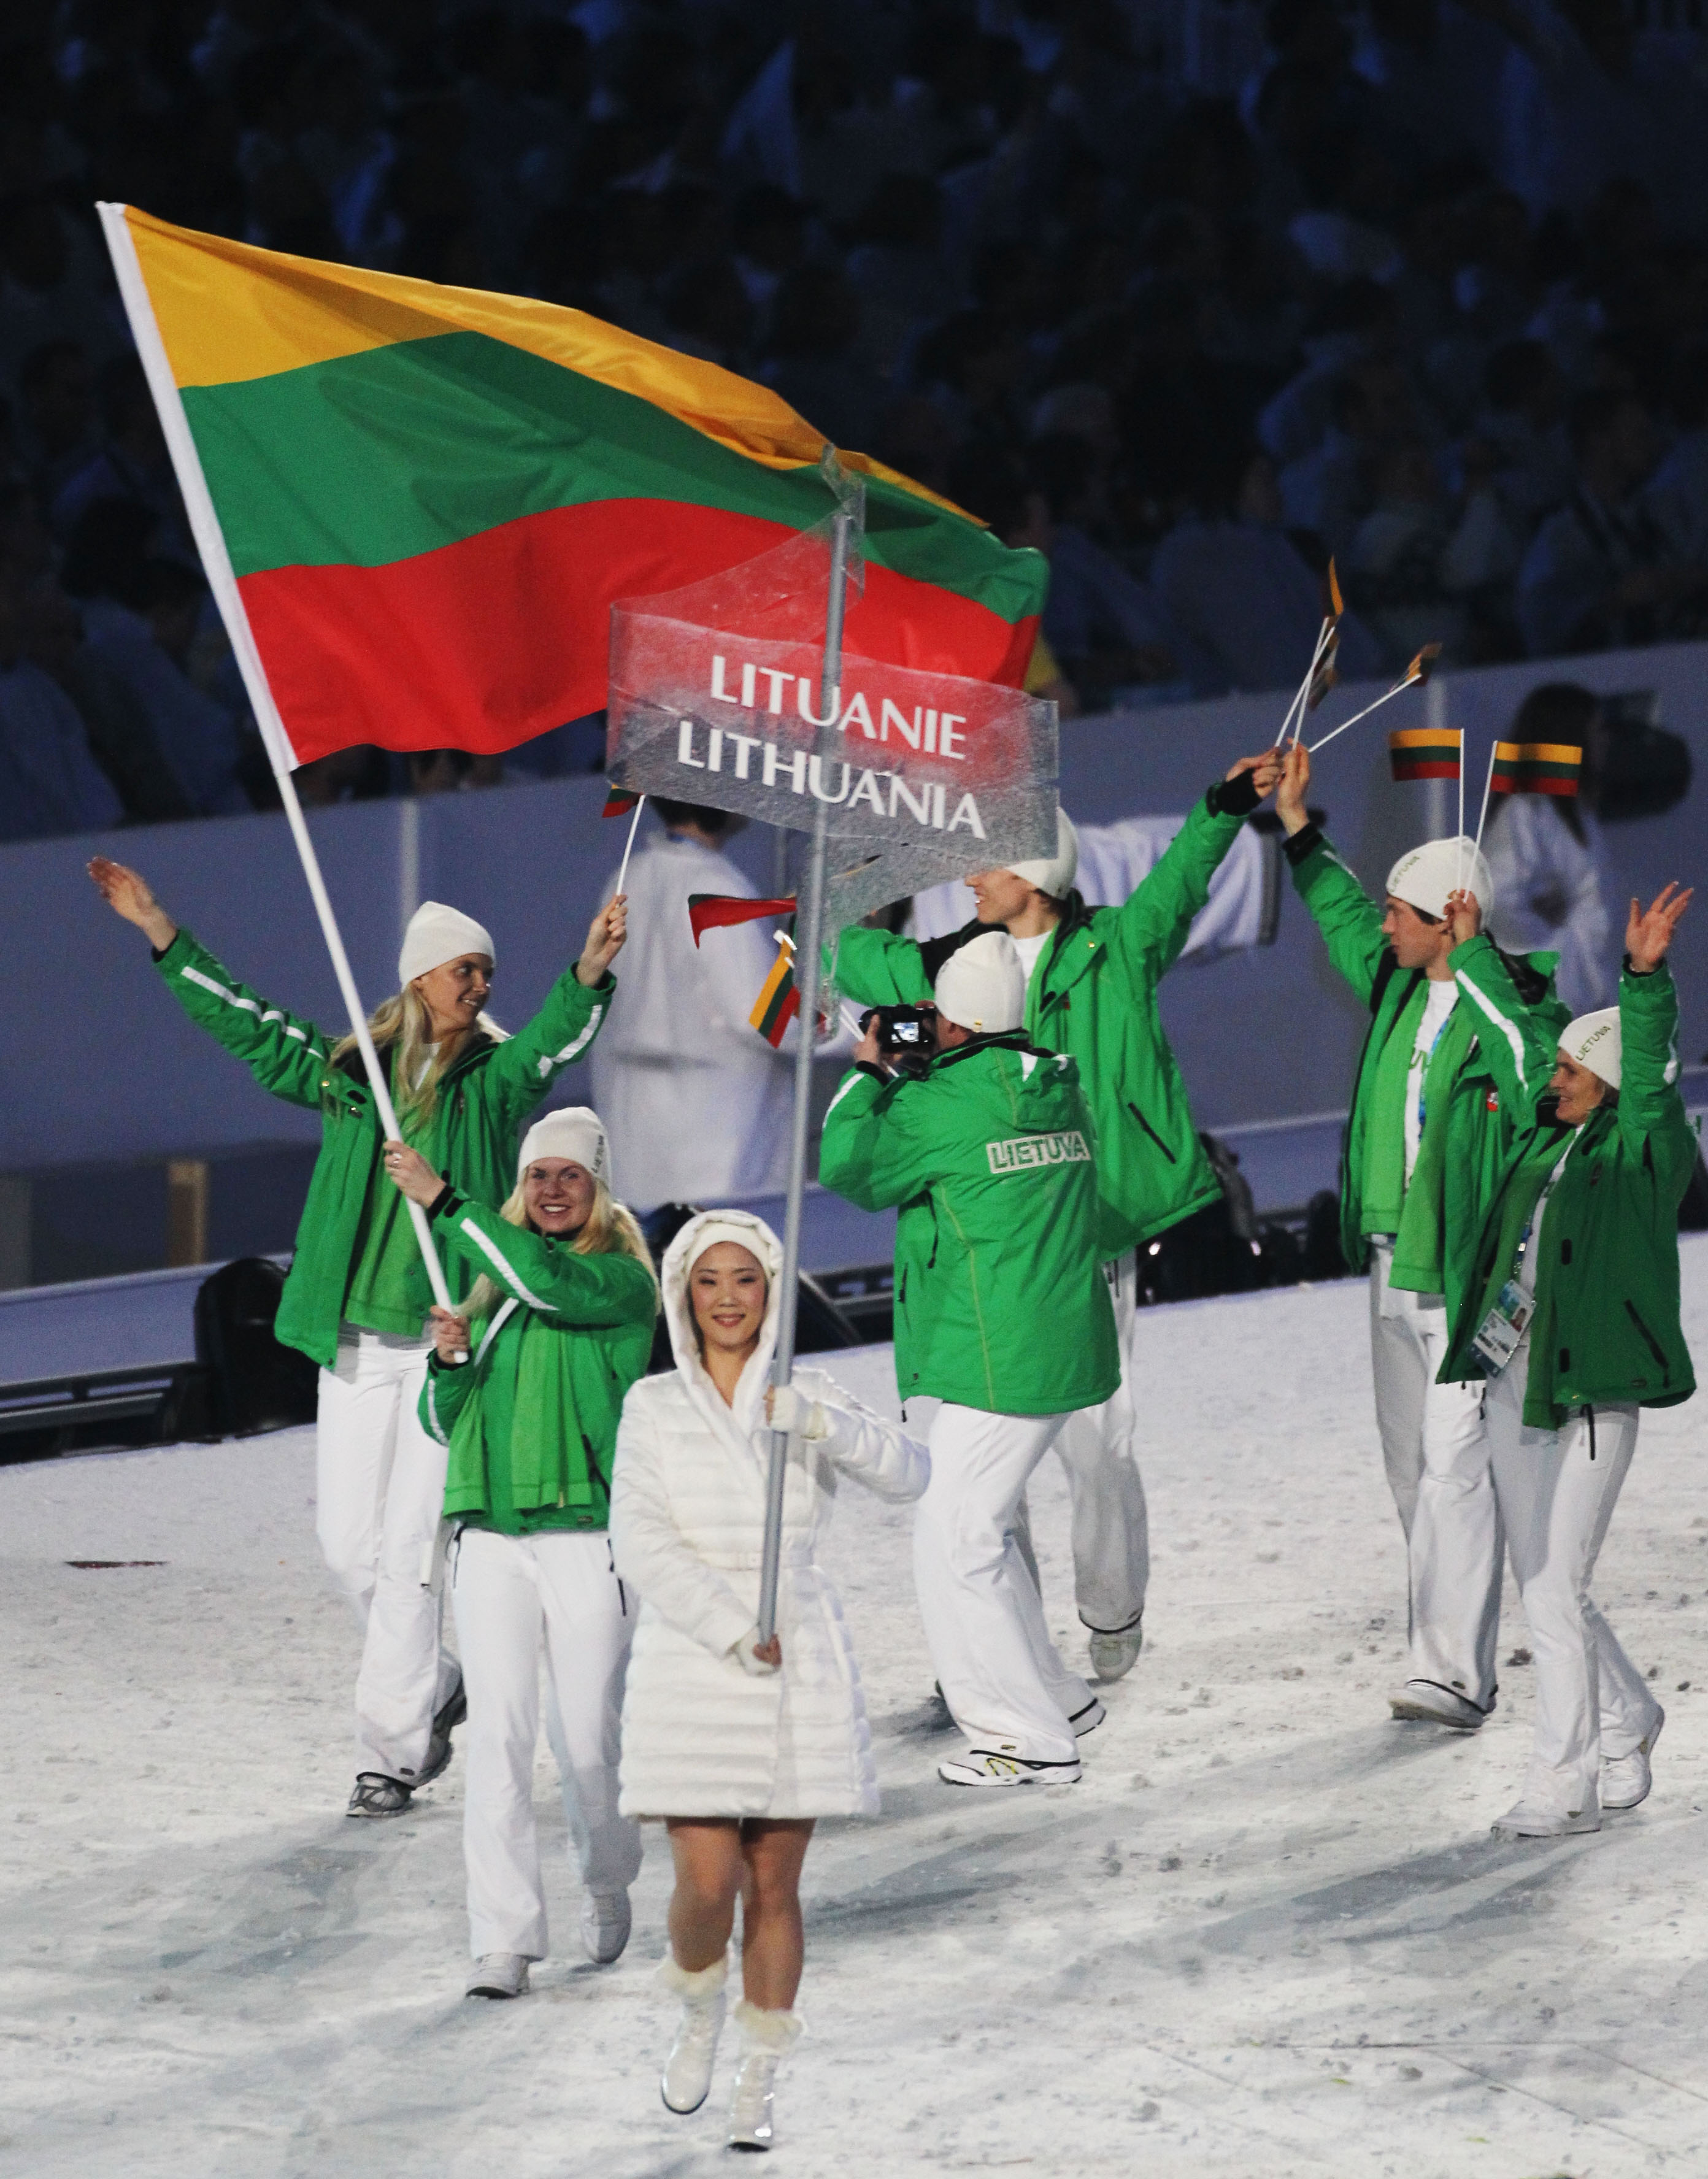 VANCOUVER, BC - FEBRUARY 12: Irina Terentjeva of Lithuania carries the flag during the Opening Ceremony of the 2010 Vancouver Winter Olympics at BC Place on February 12, 2010 in Vancouver, Canada.  (Photo by Matthew Stockman/Getty Images)